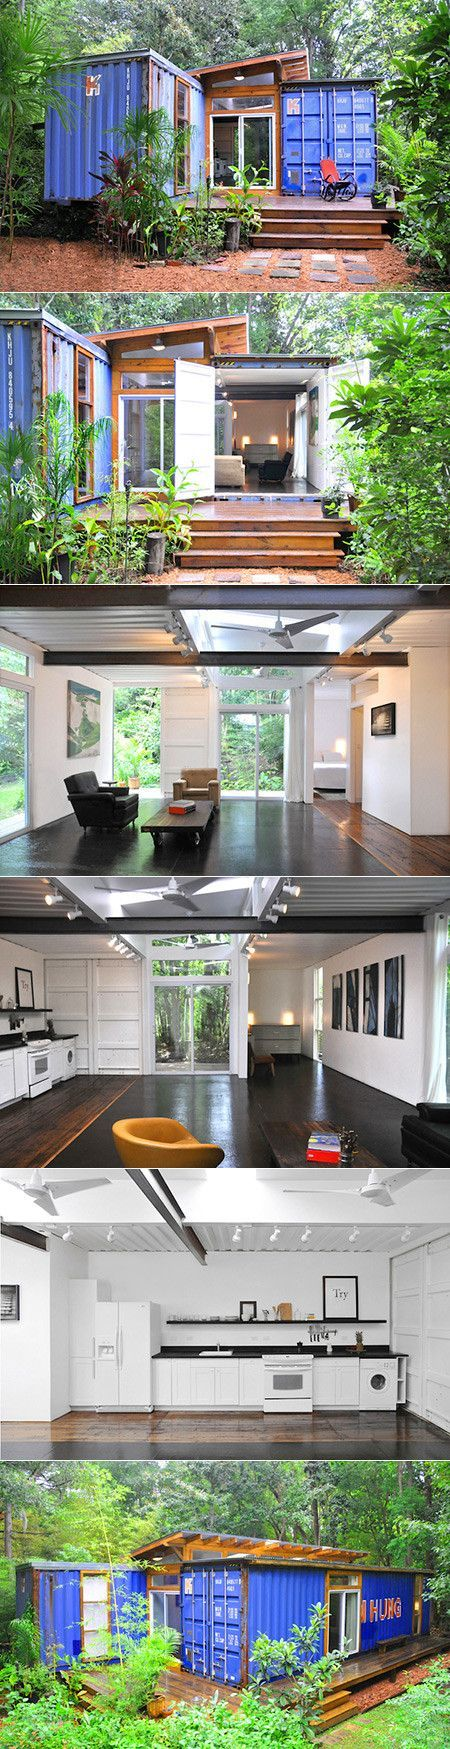 Shipping container homes offer up an economical and interesting space to live in on a budget and in style. Price Street Projects has created this residence for a young couple thats filled with style on both the inside and out. Its sleek and modern, unique and insightful, and best of all it is situated in the Savannah, Georgia woods.